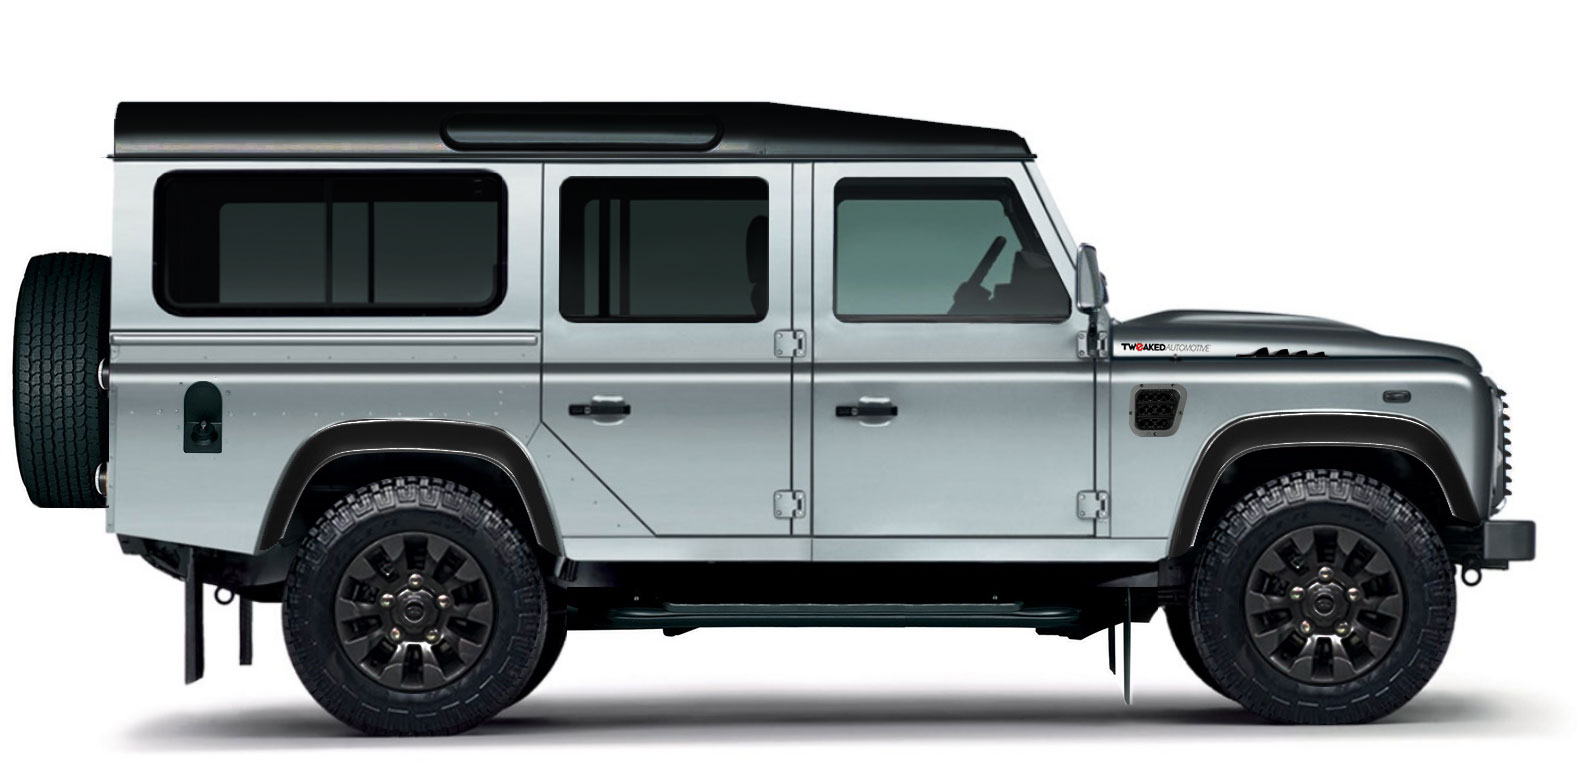 Land Rover Defender 110 Xs Station Wagon Tweaked Edition